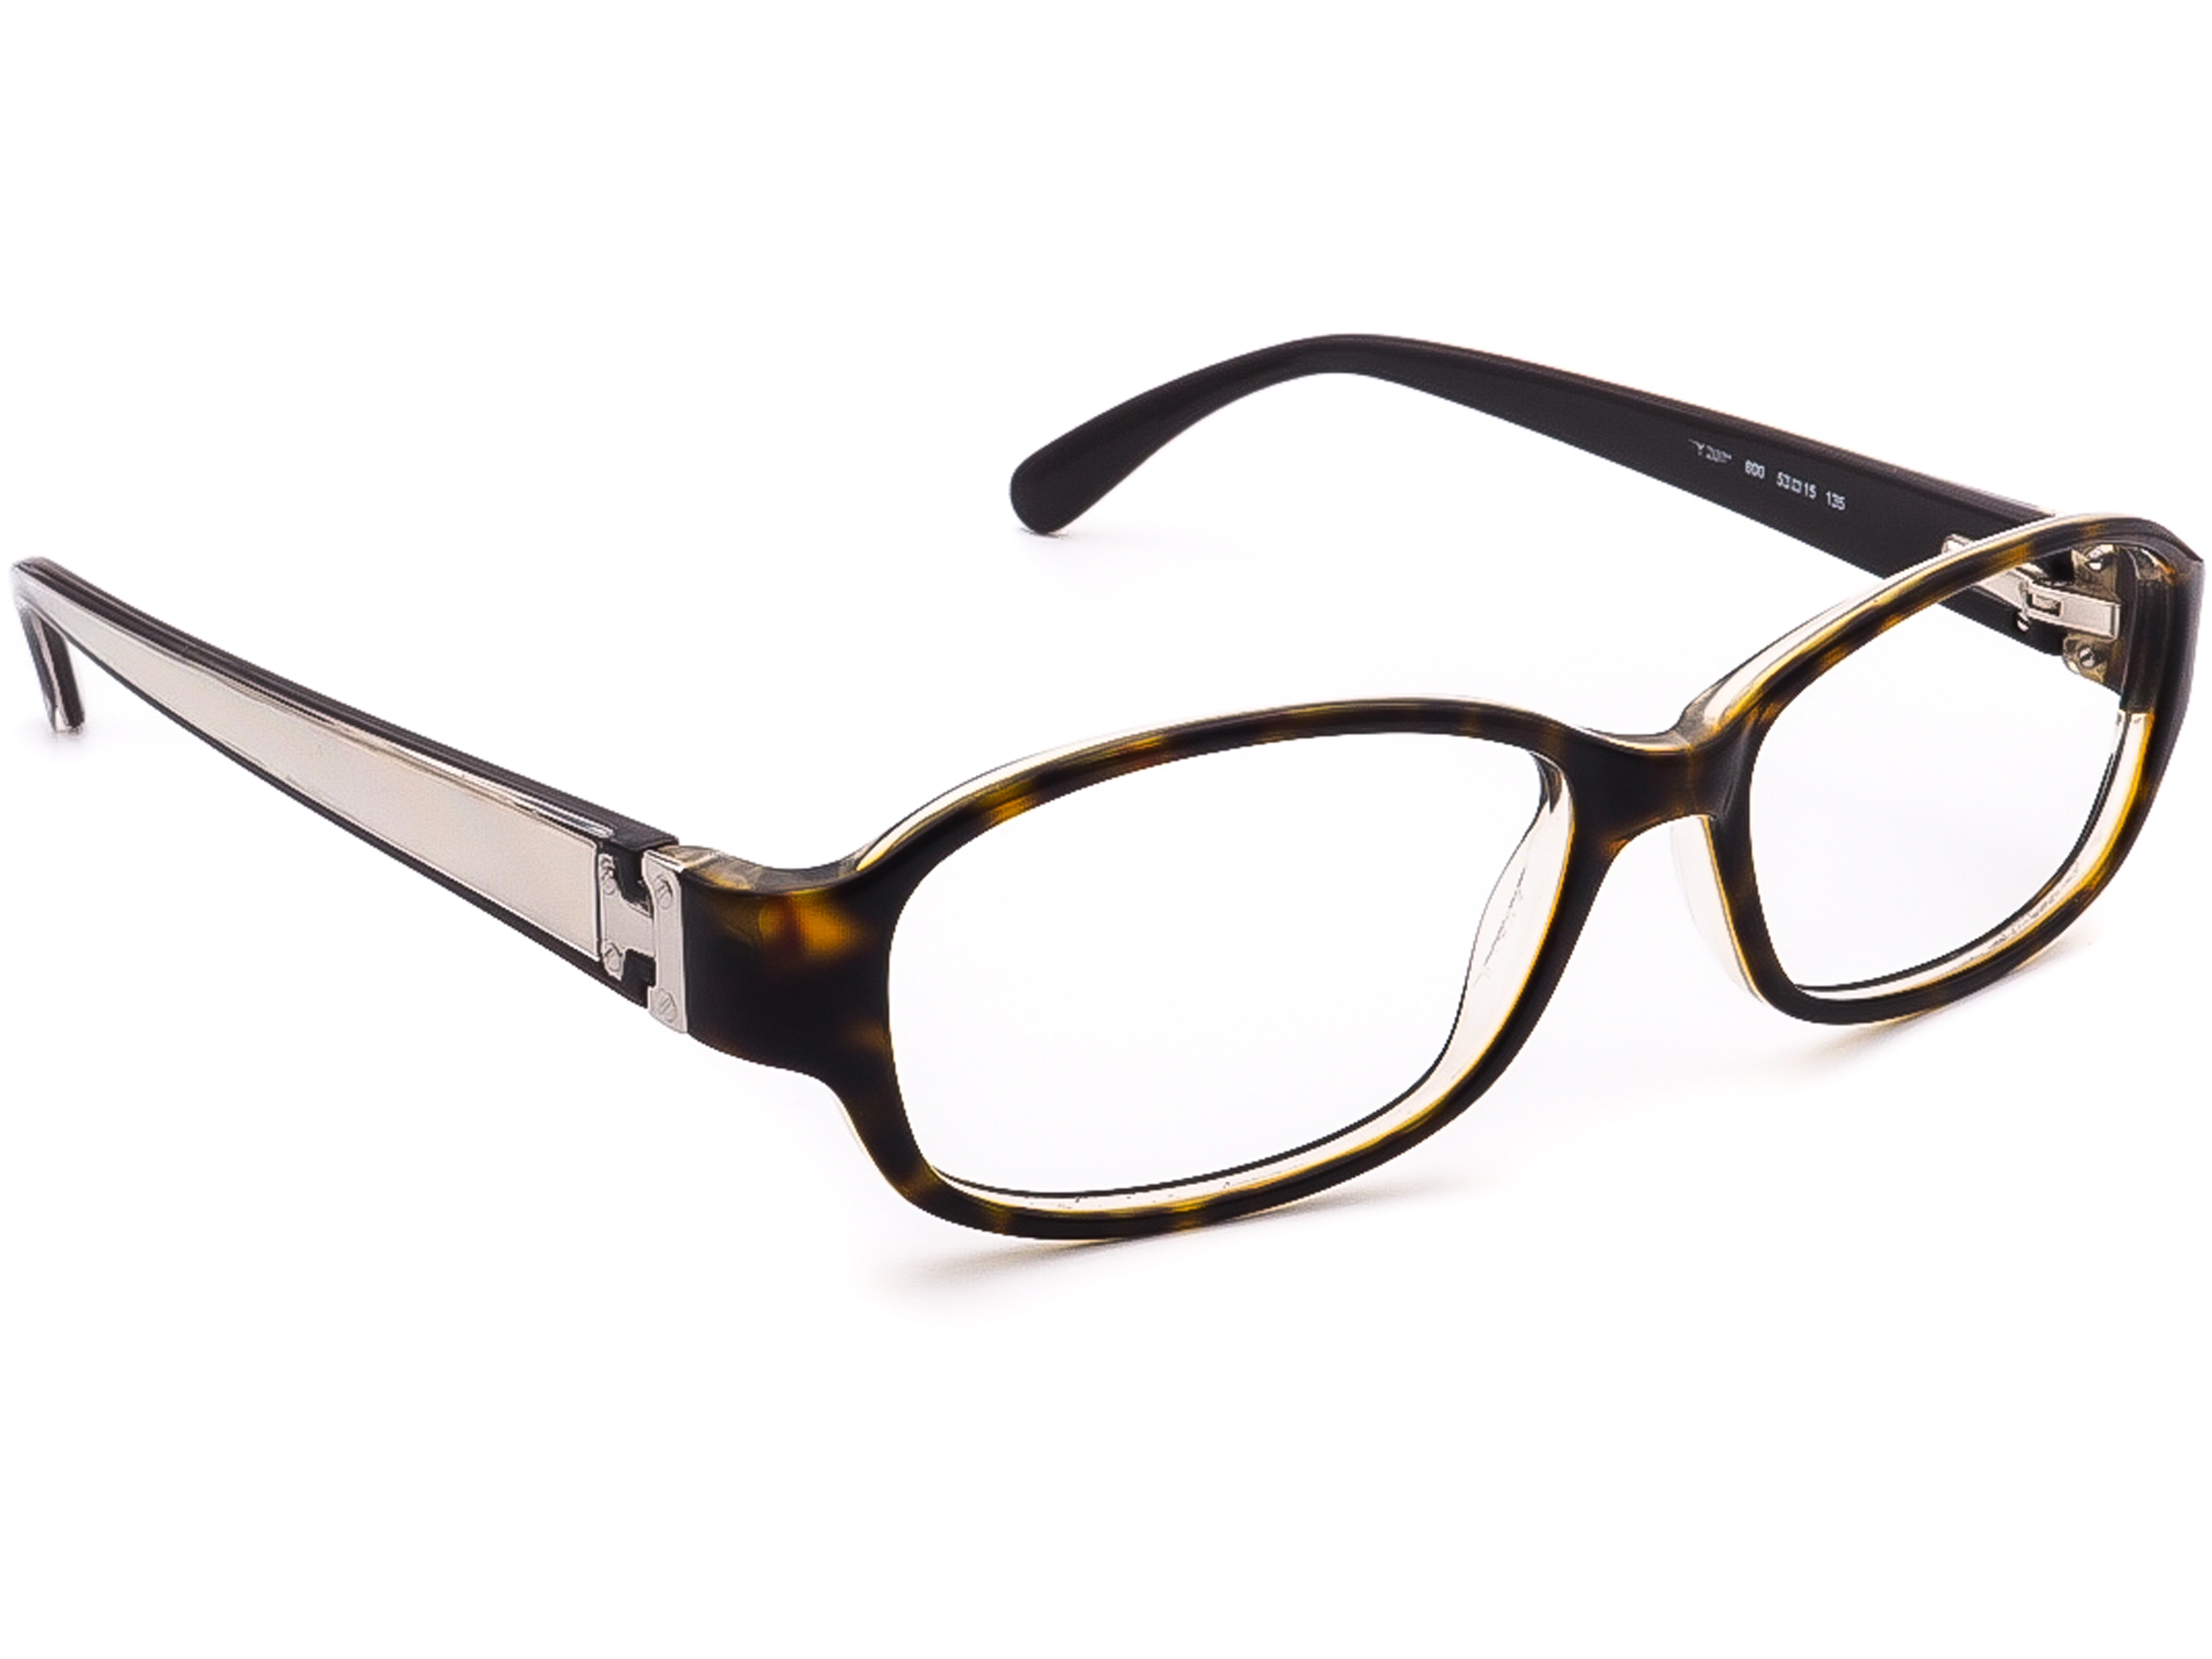 Tory Burch TY 2001 800 Eyeglasses